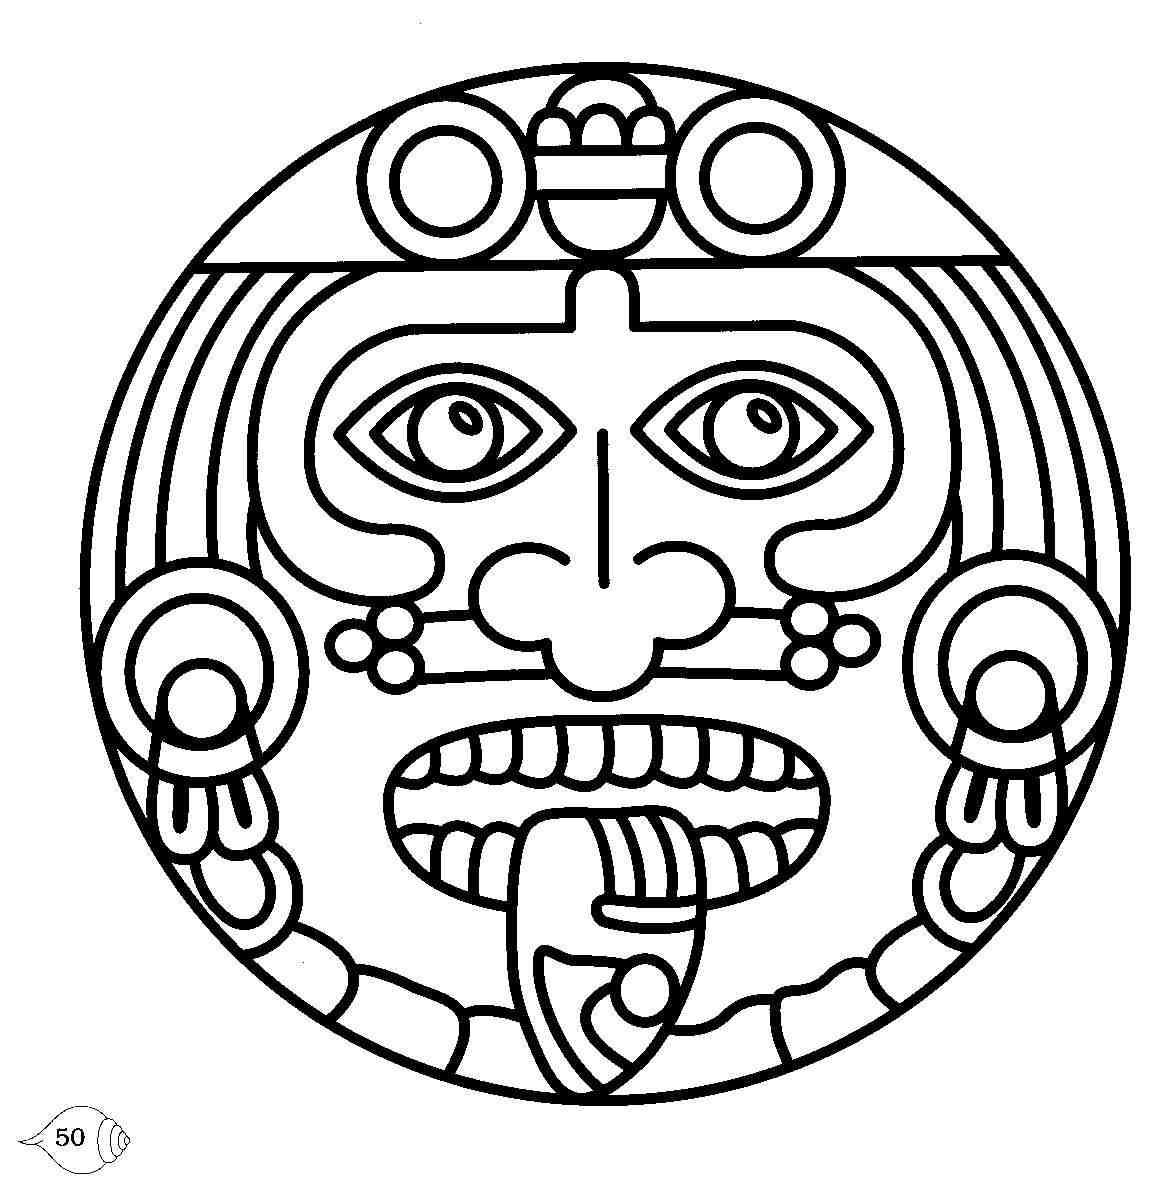 1168x1180 Aztec Coloring Pages For Kids Could Find Your Favorites